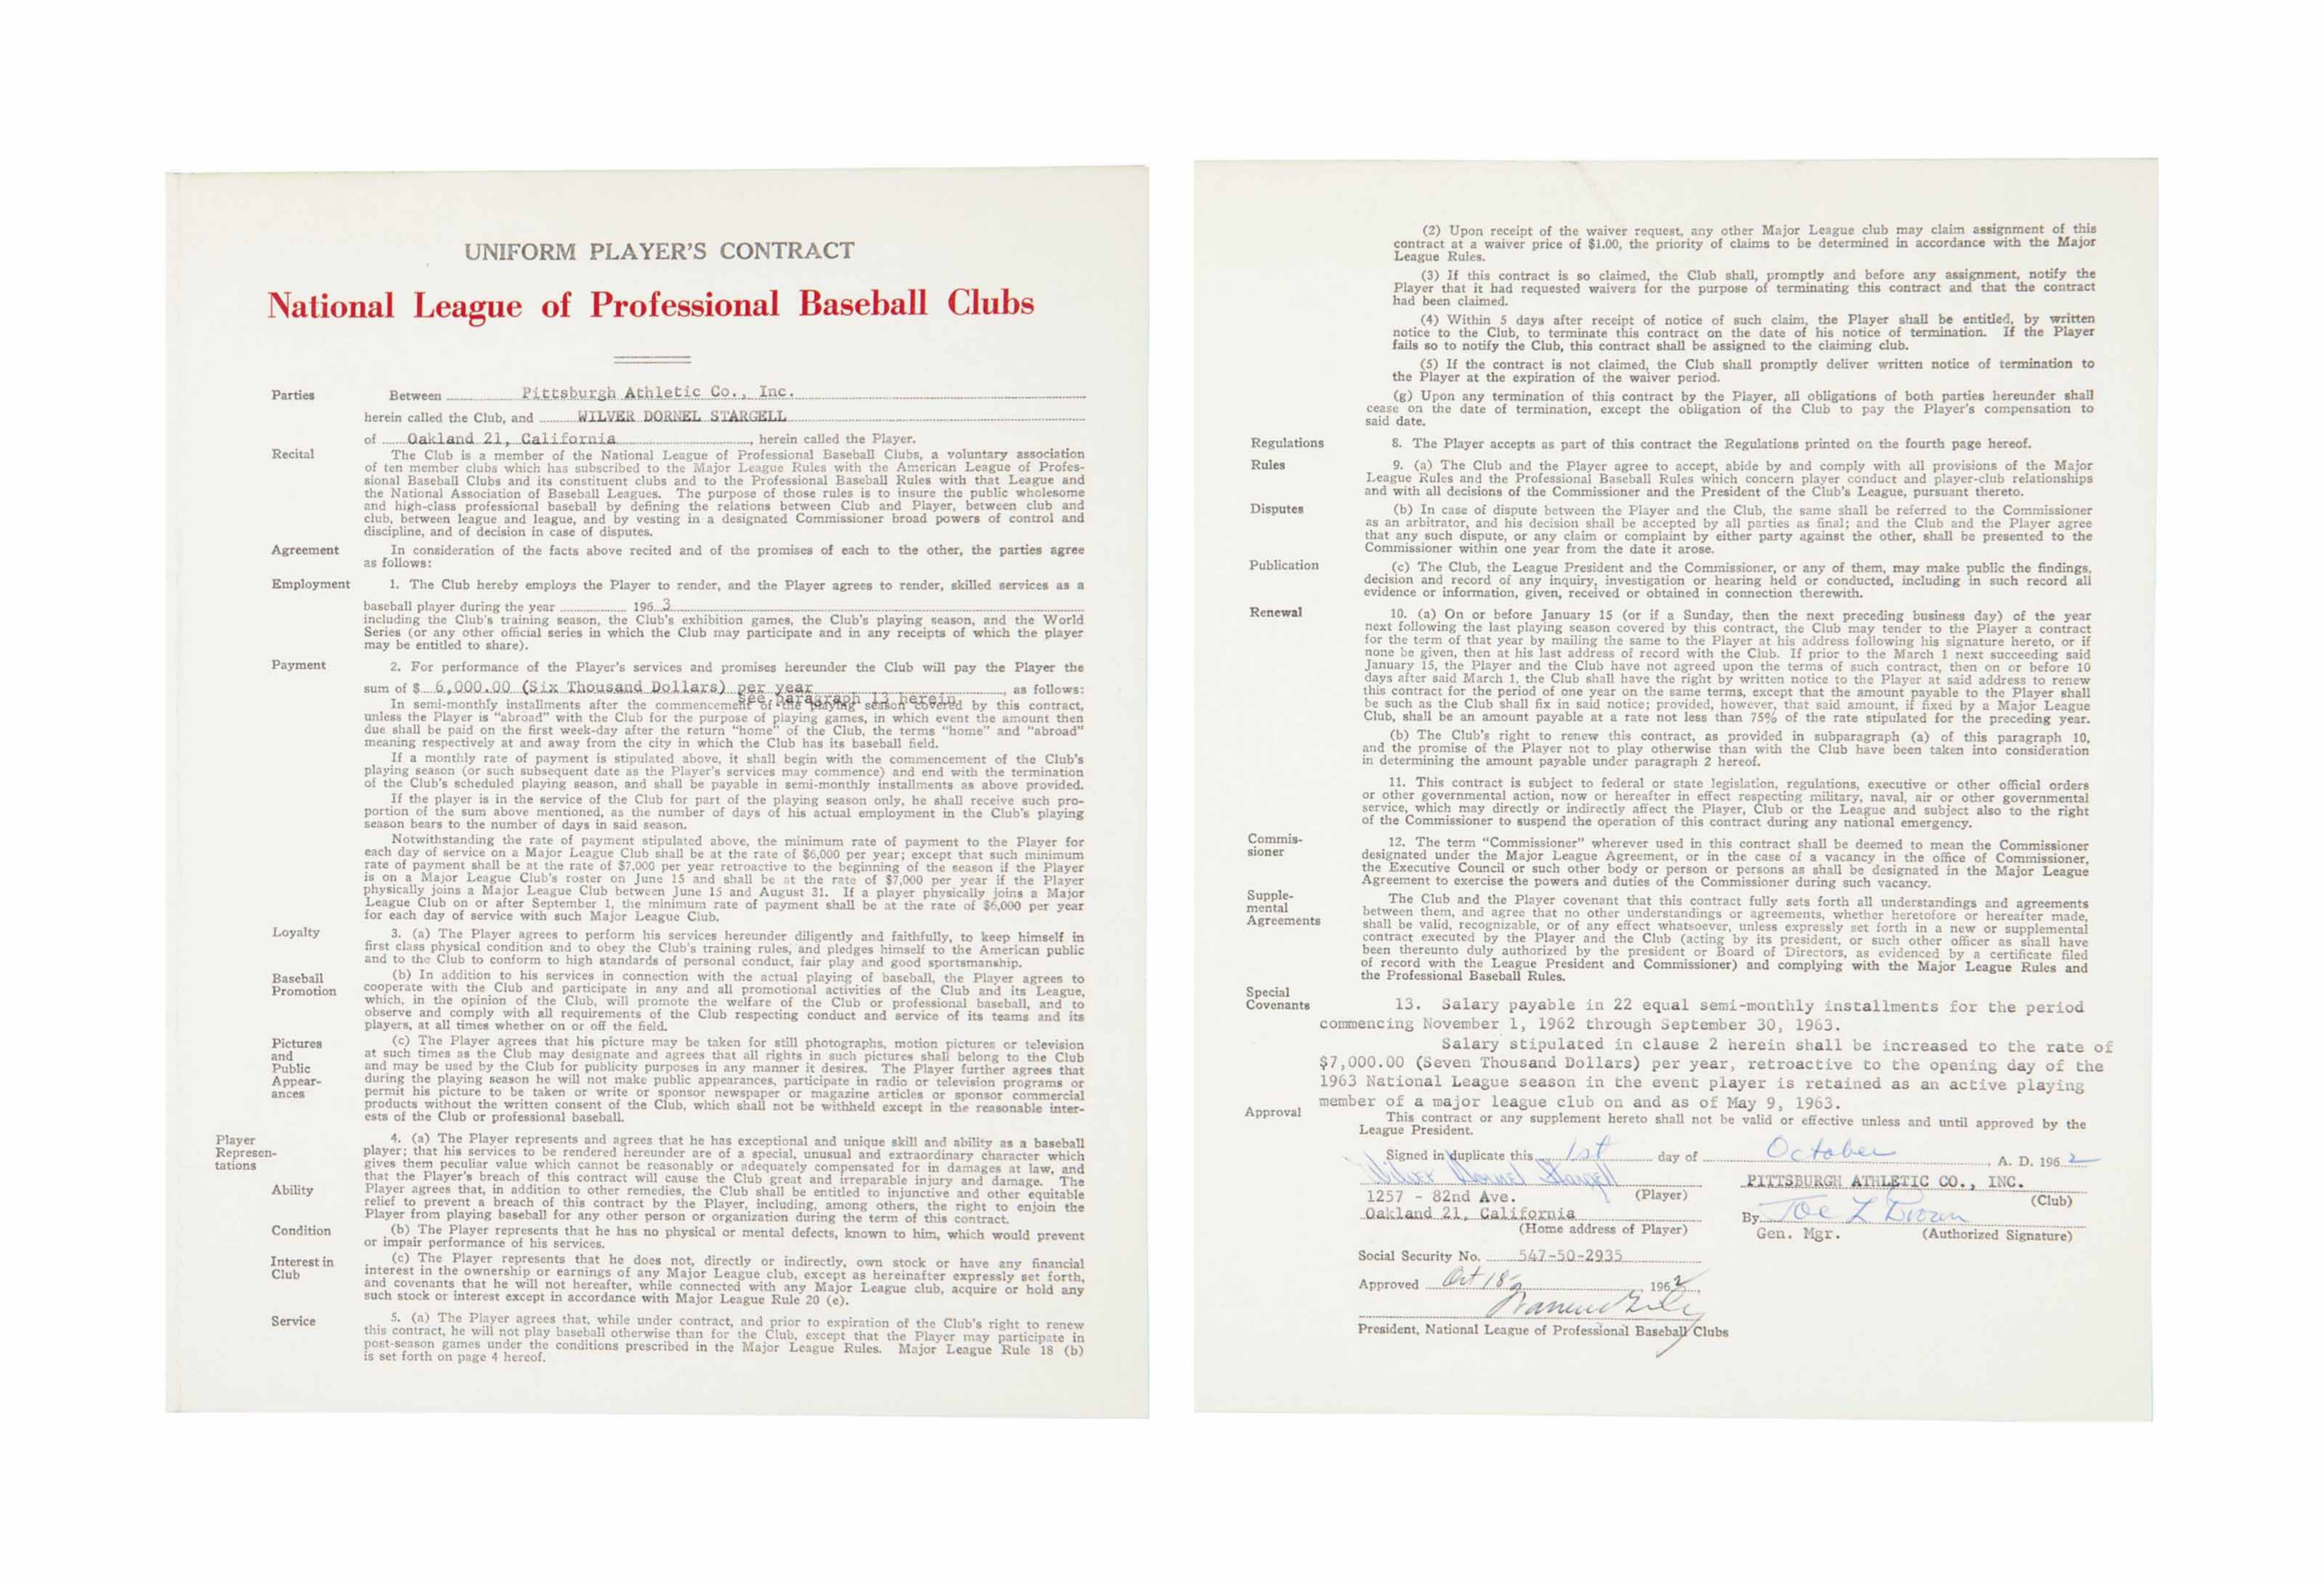 WILLIE STARGELL SIGNED CONTRAC